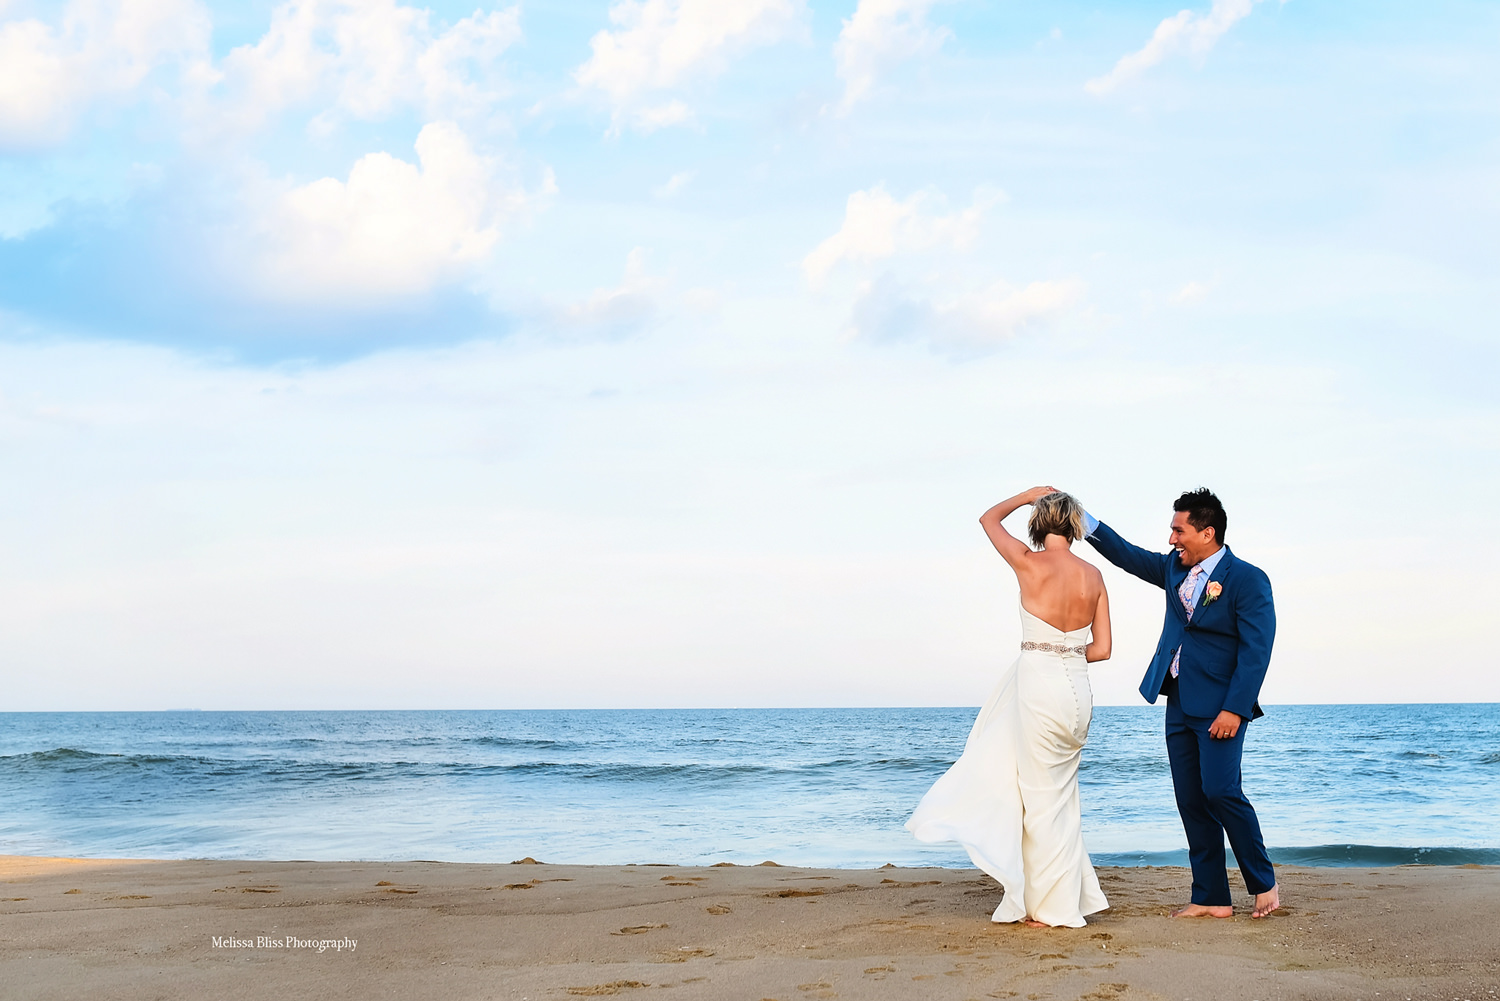 destination-wedding-photographer-melissa-bliss-photography-beach-wedding-bride-and-groom-dance-barefoot-in-Sandbridge-at-the-Blue-Horizon.jpg